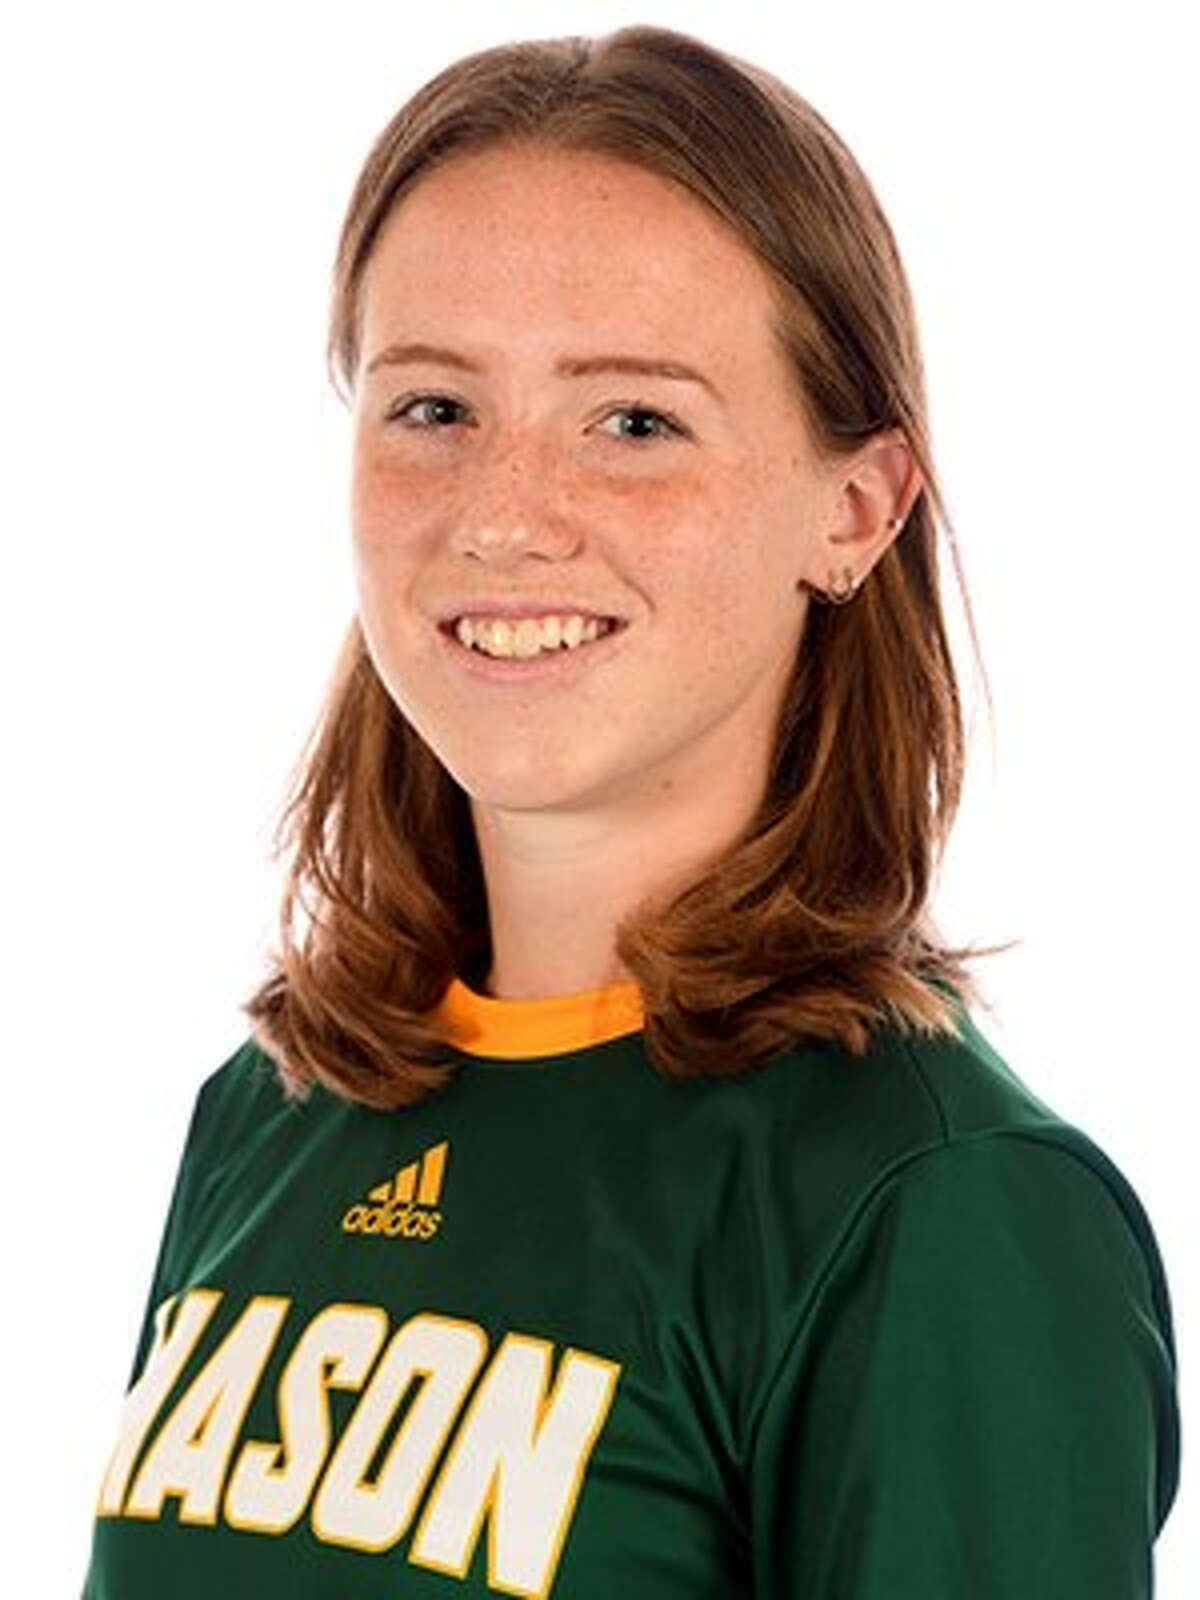 Junior midfielder Grace Hotaling, from Delmar and a Bethlehem High graduate, plays for the George Mason women's soccer team.